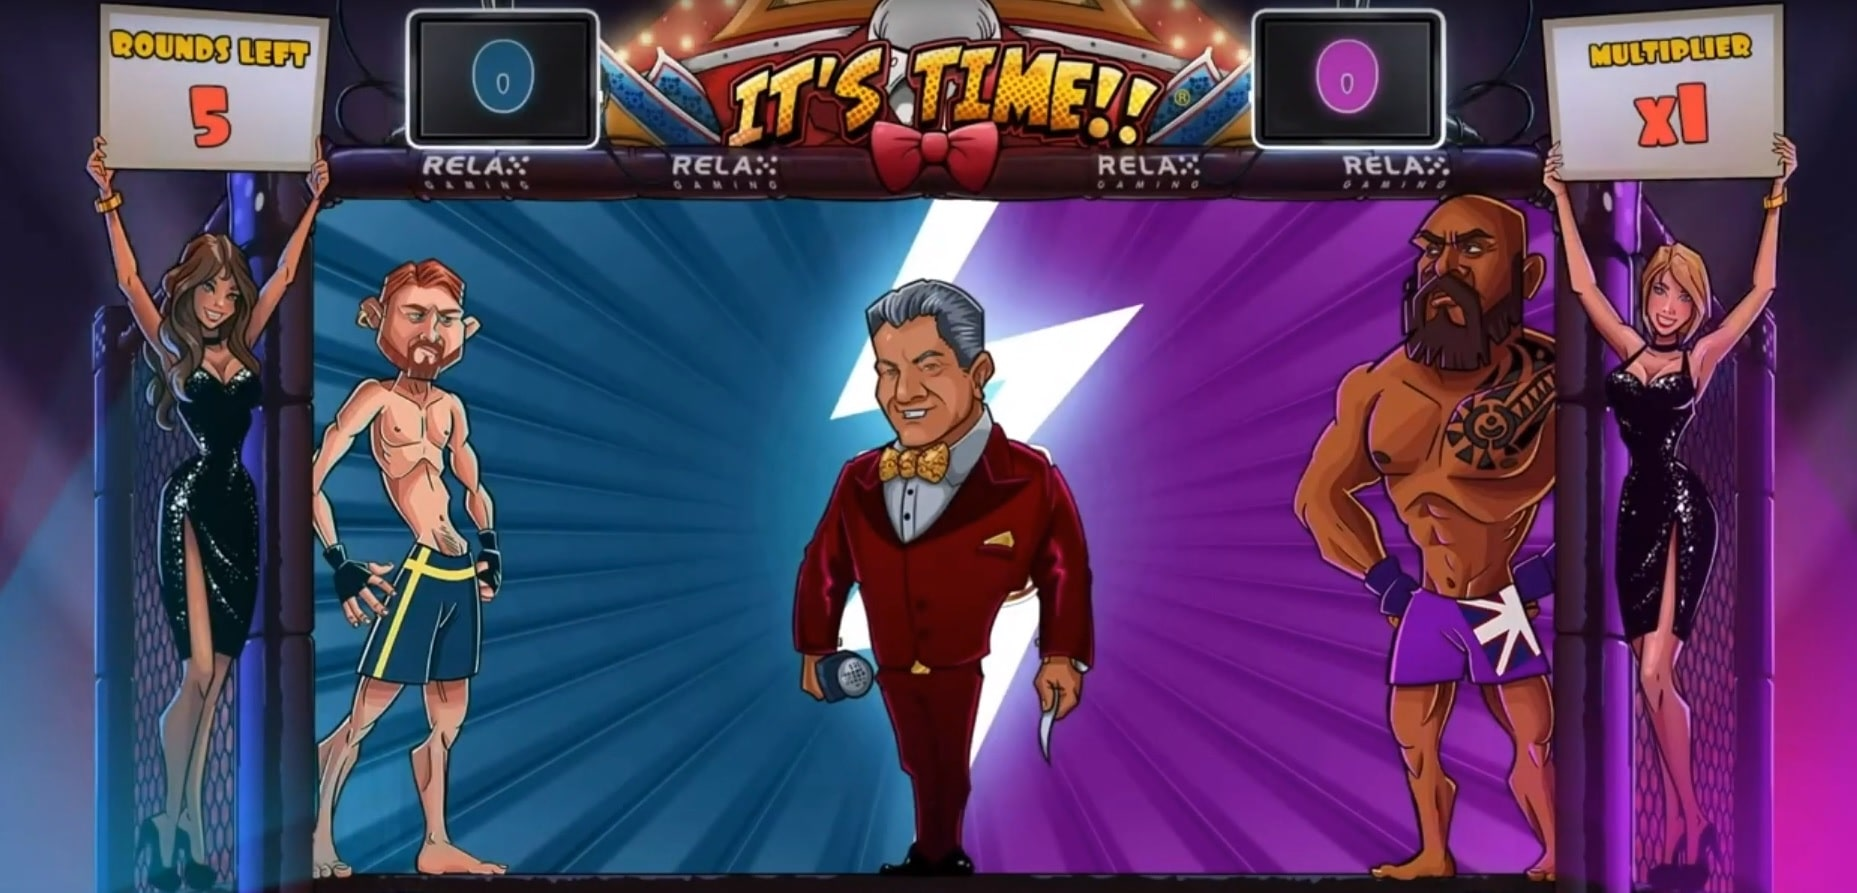 Bruce Buffer featured in the gameplay of It's Time slot from Relax.